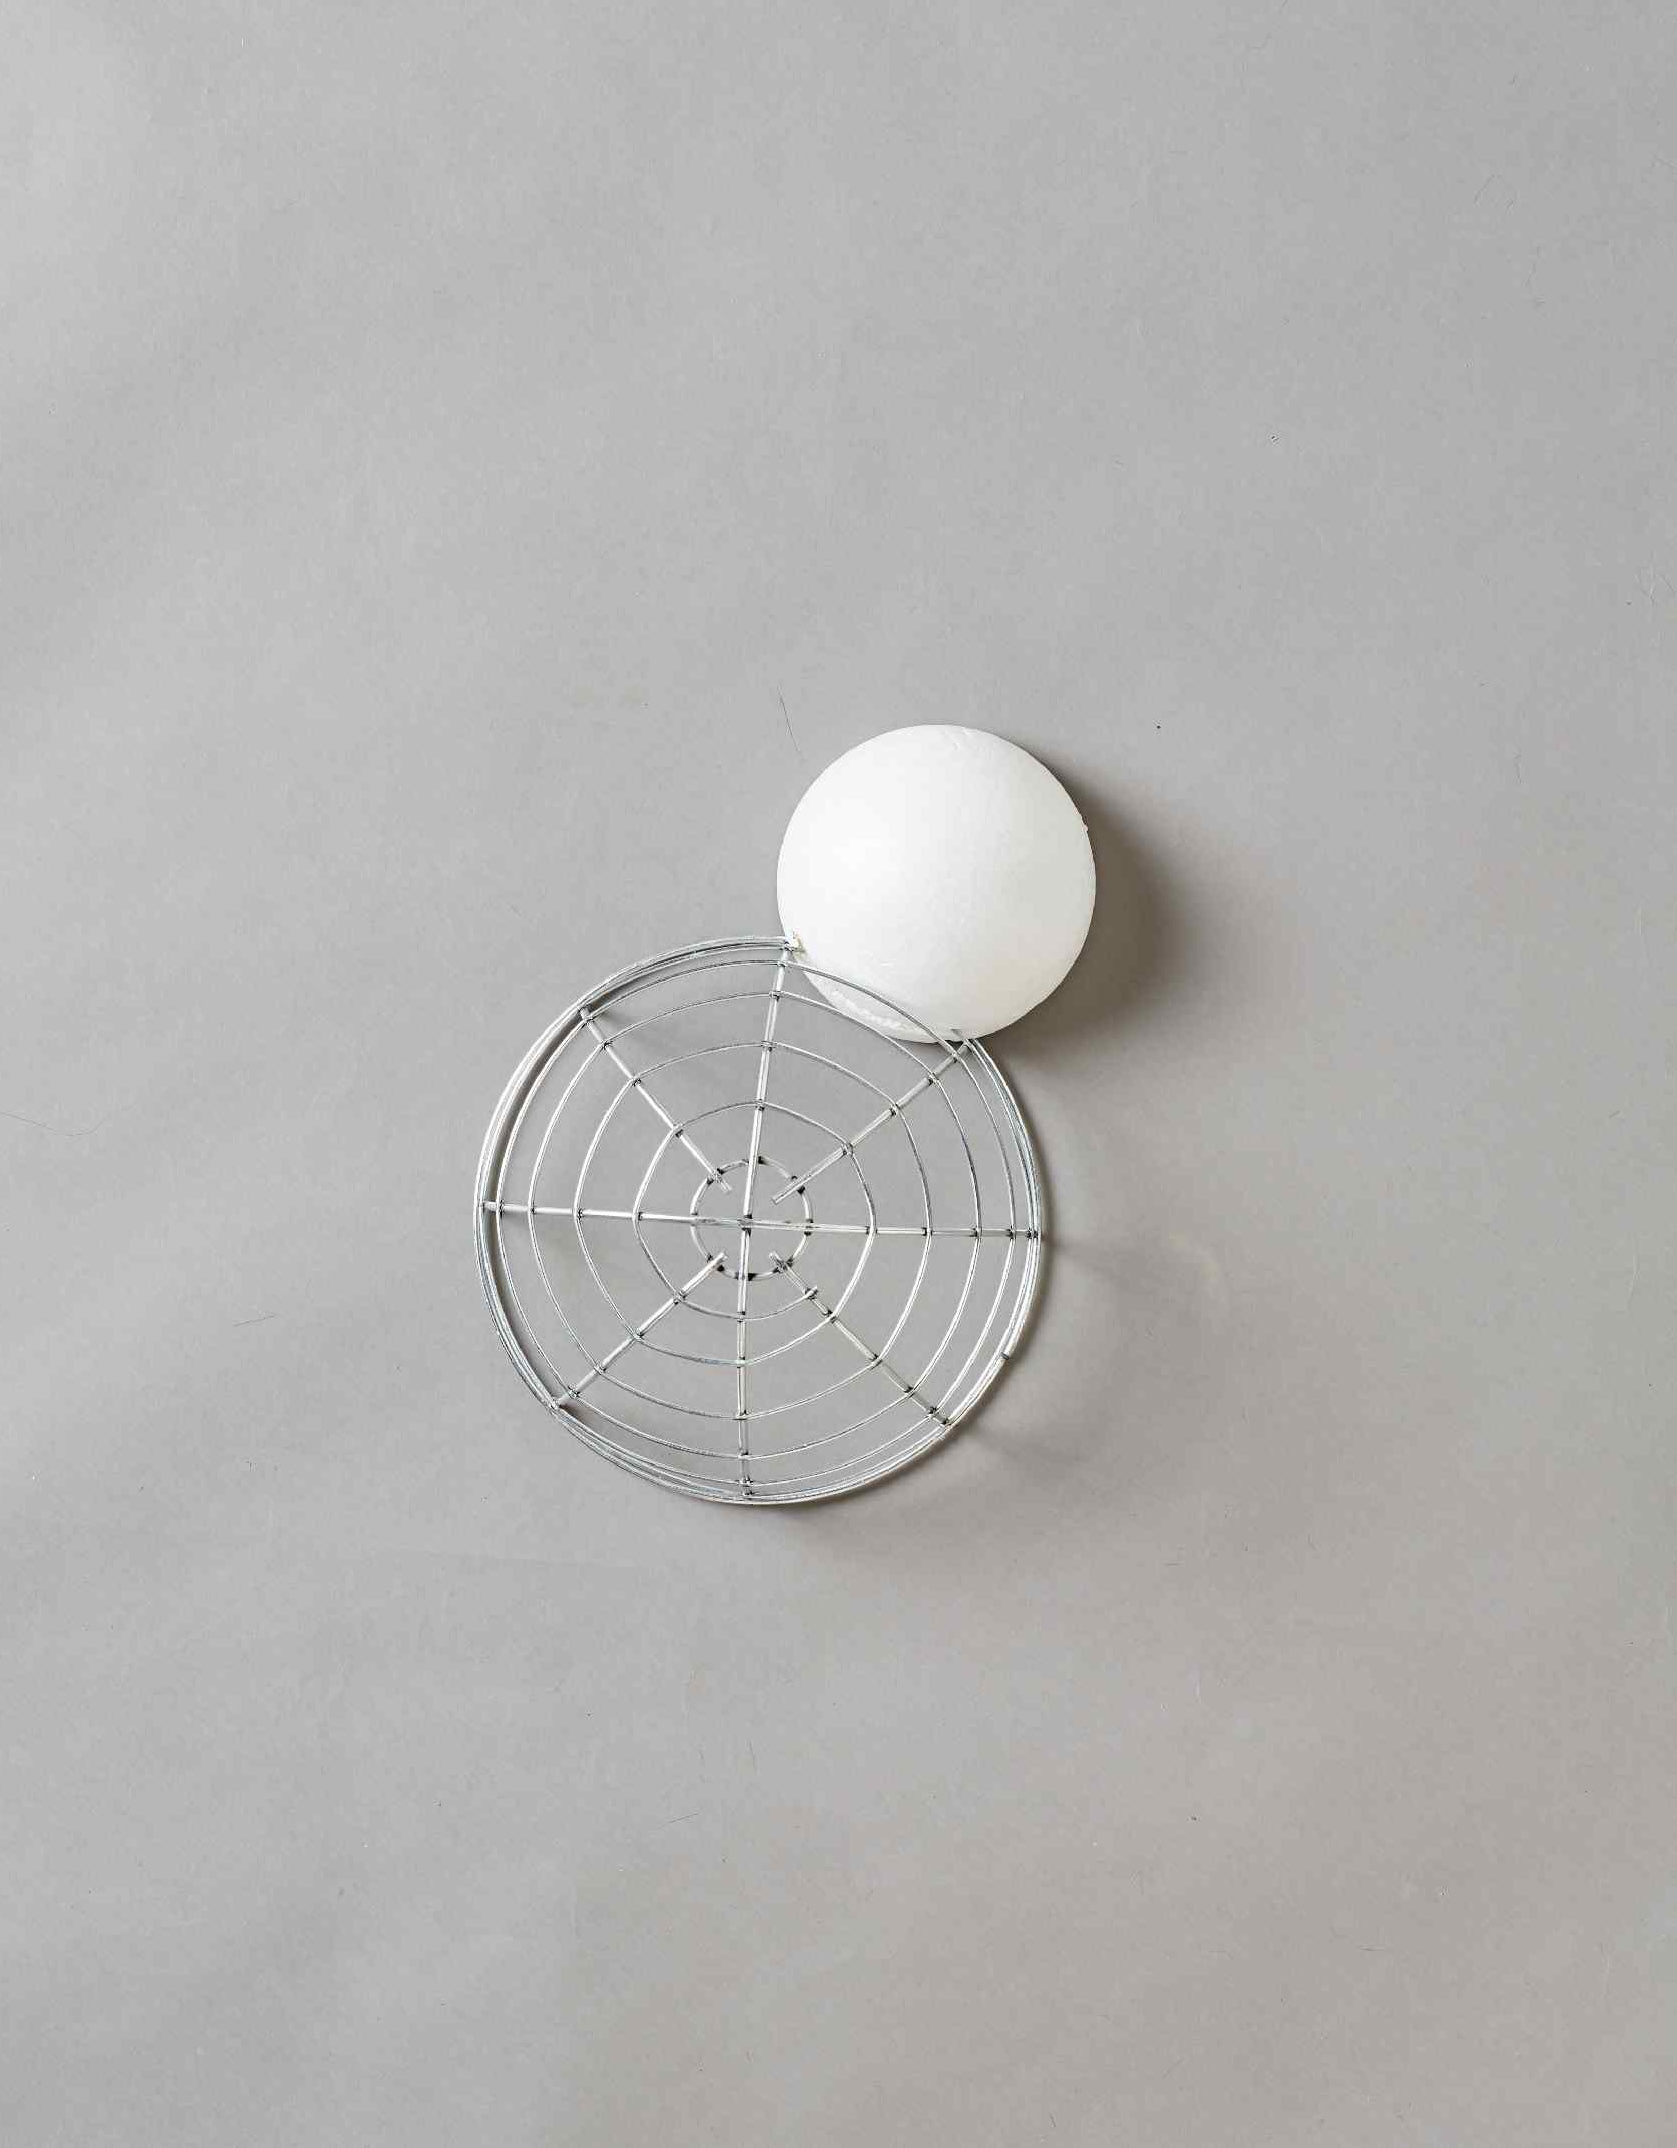 Small white foam ball glued to the side of a large silver wire sphere